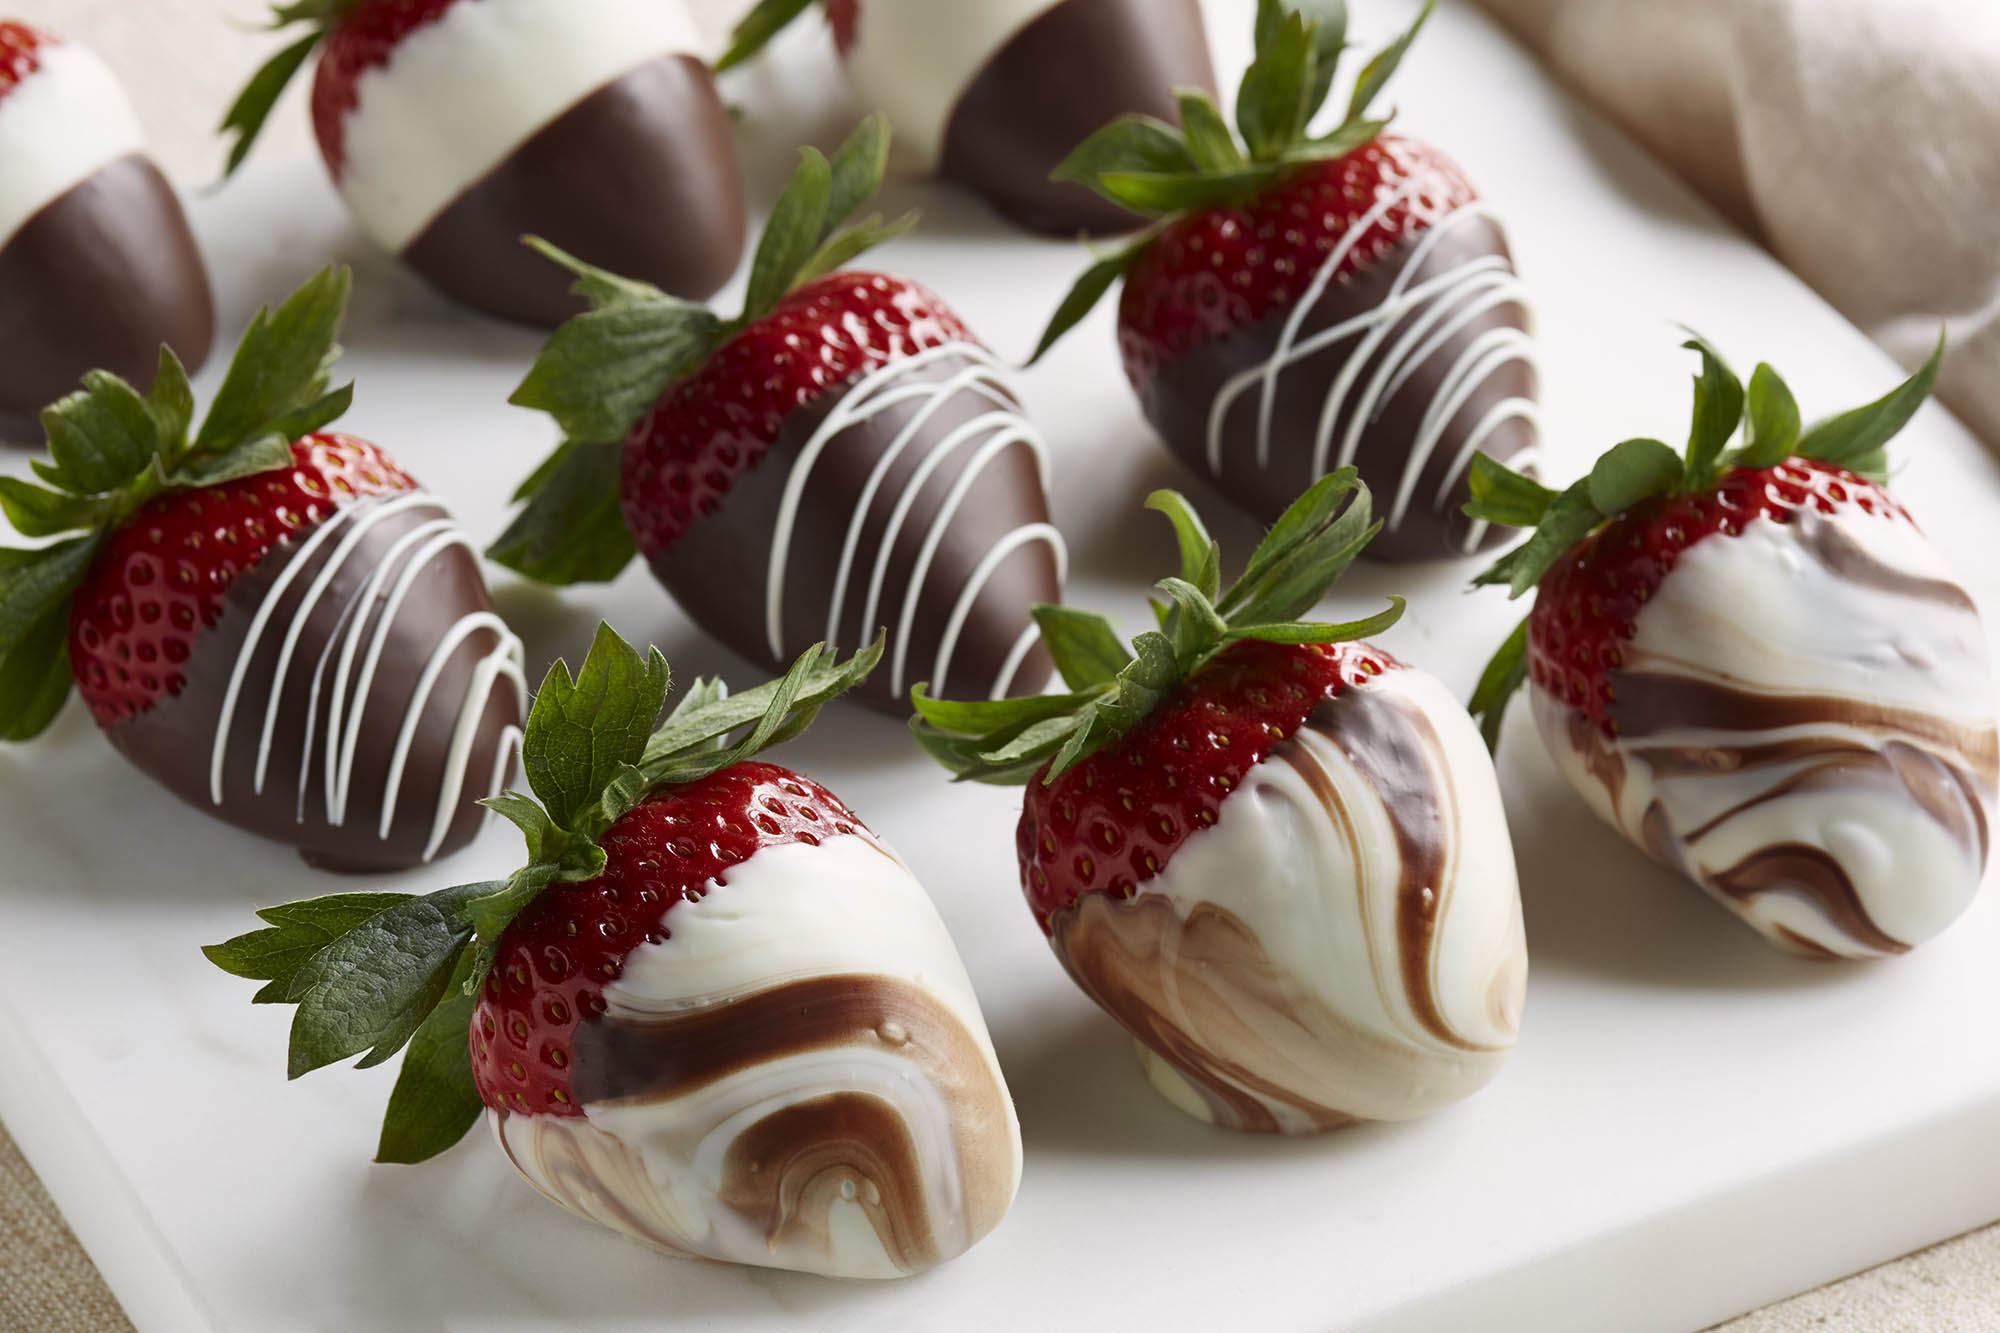 Organic Chocolate Covered Strawberries